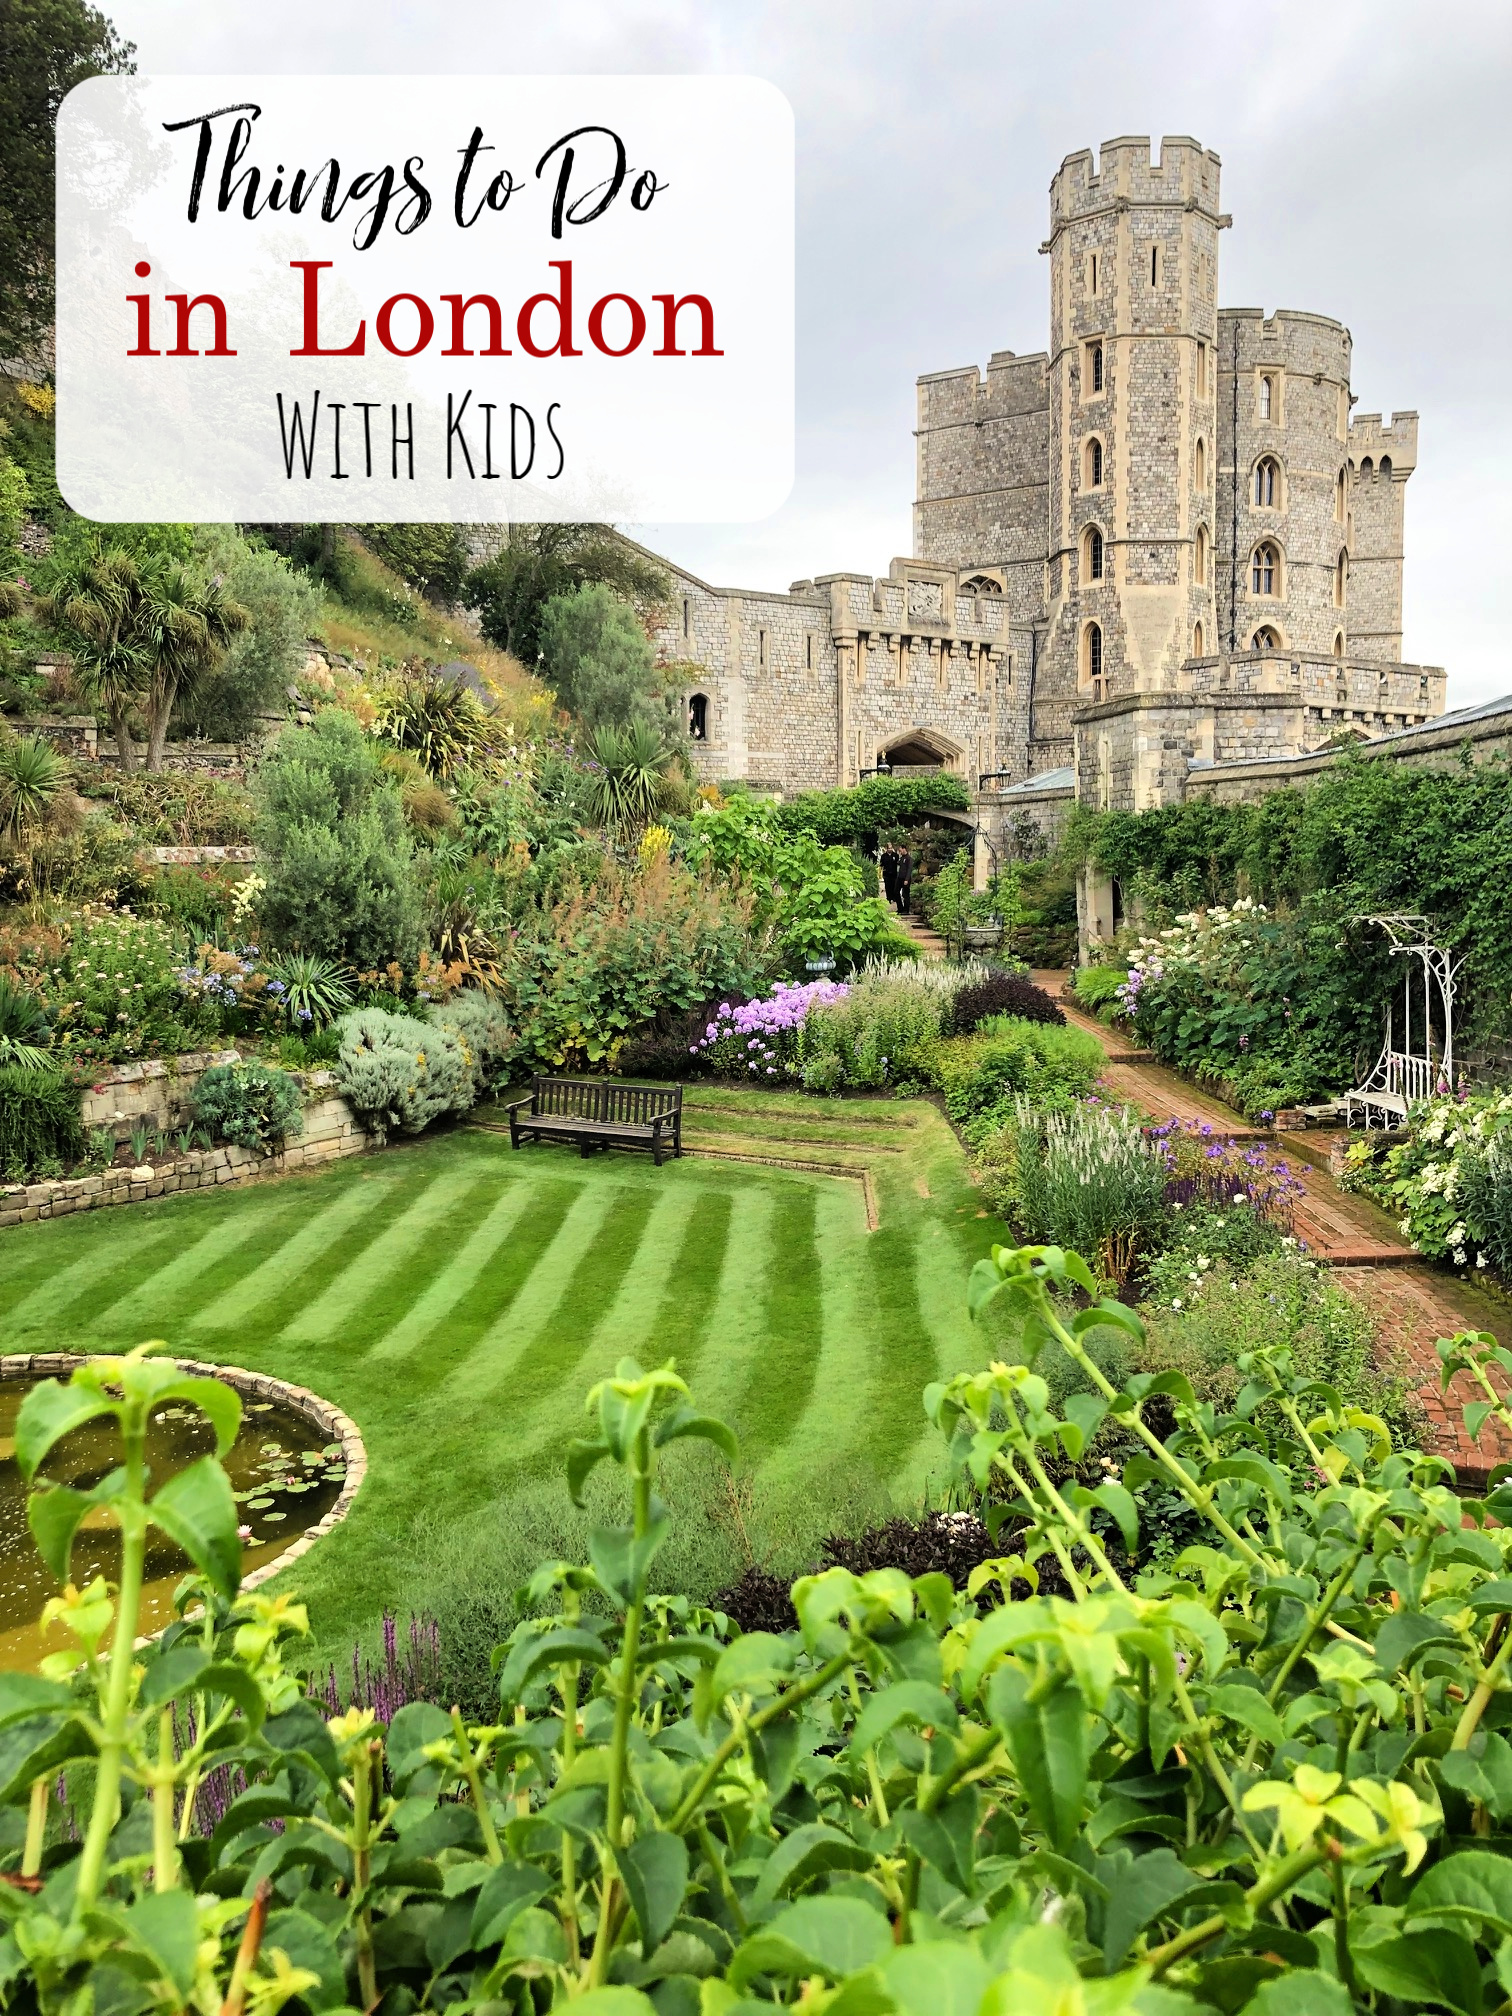 Things to do in London with Kids-If you're planning a trip to England, these places to visit and things to see in London (and the countryside) are going to help you make the most of your trip. #travel #London #travelwithkids #traveltips #vacation #England